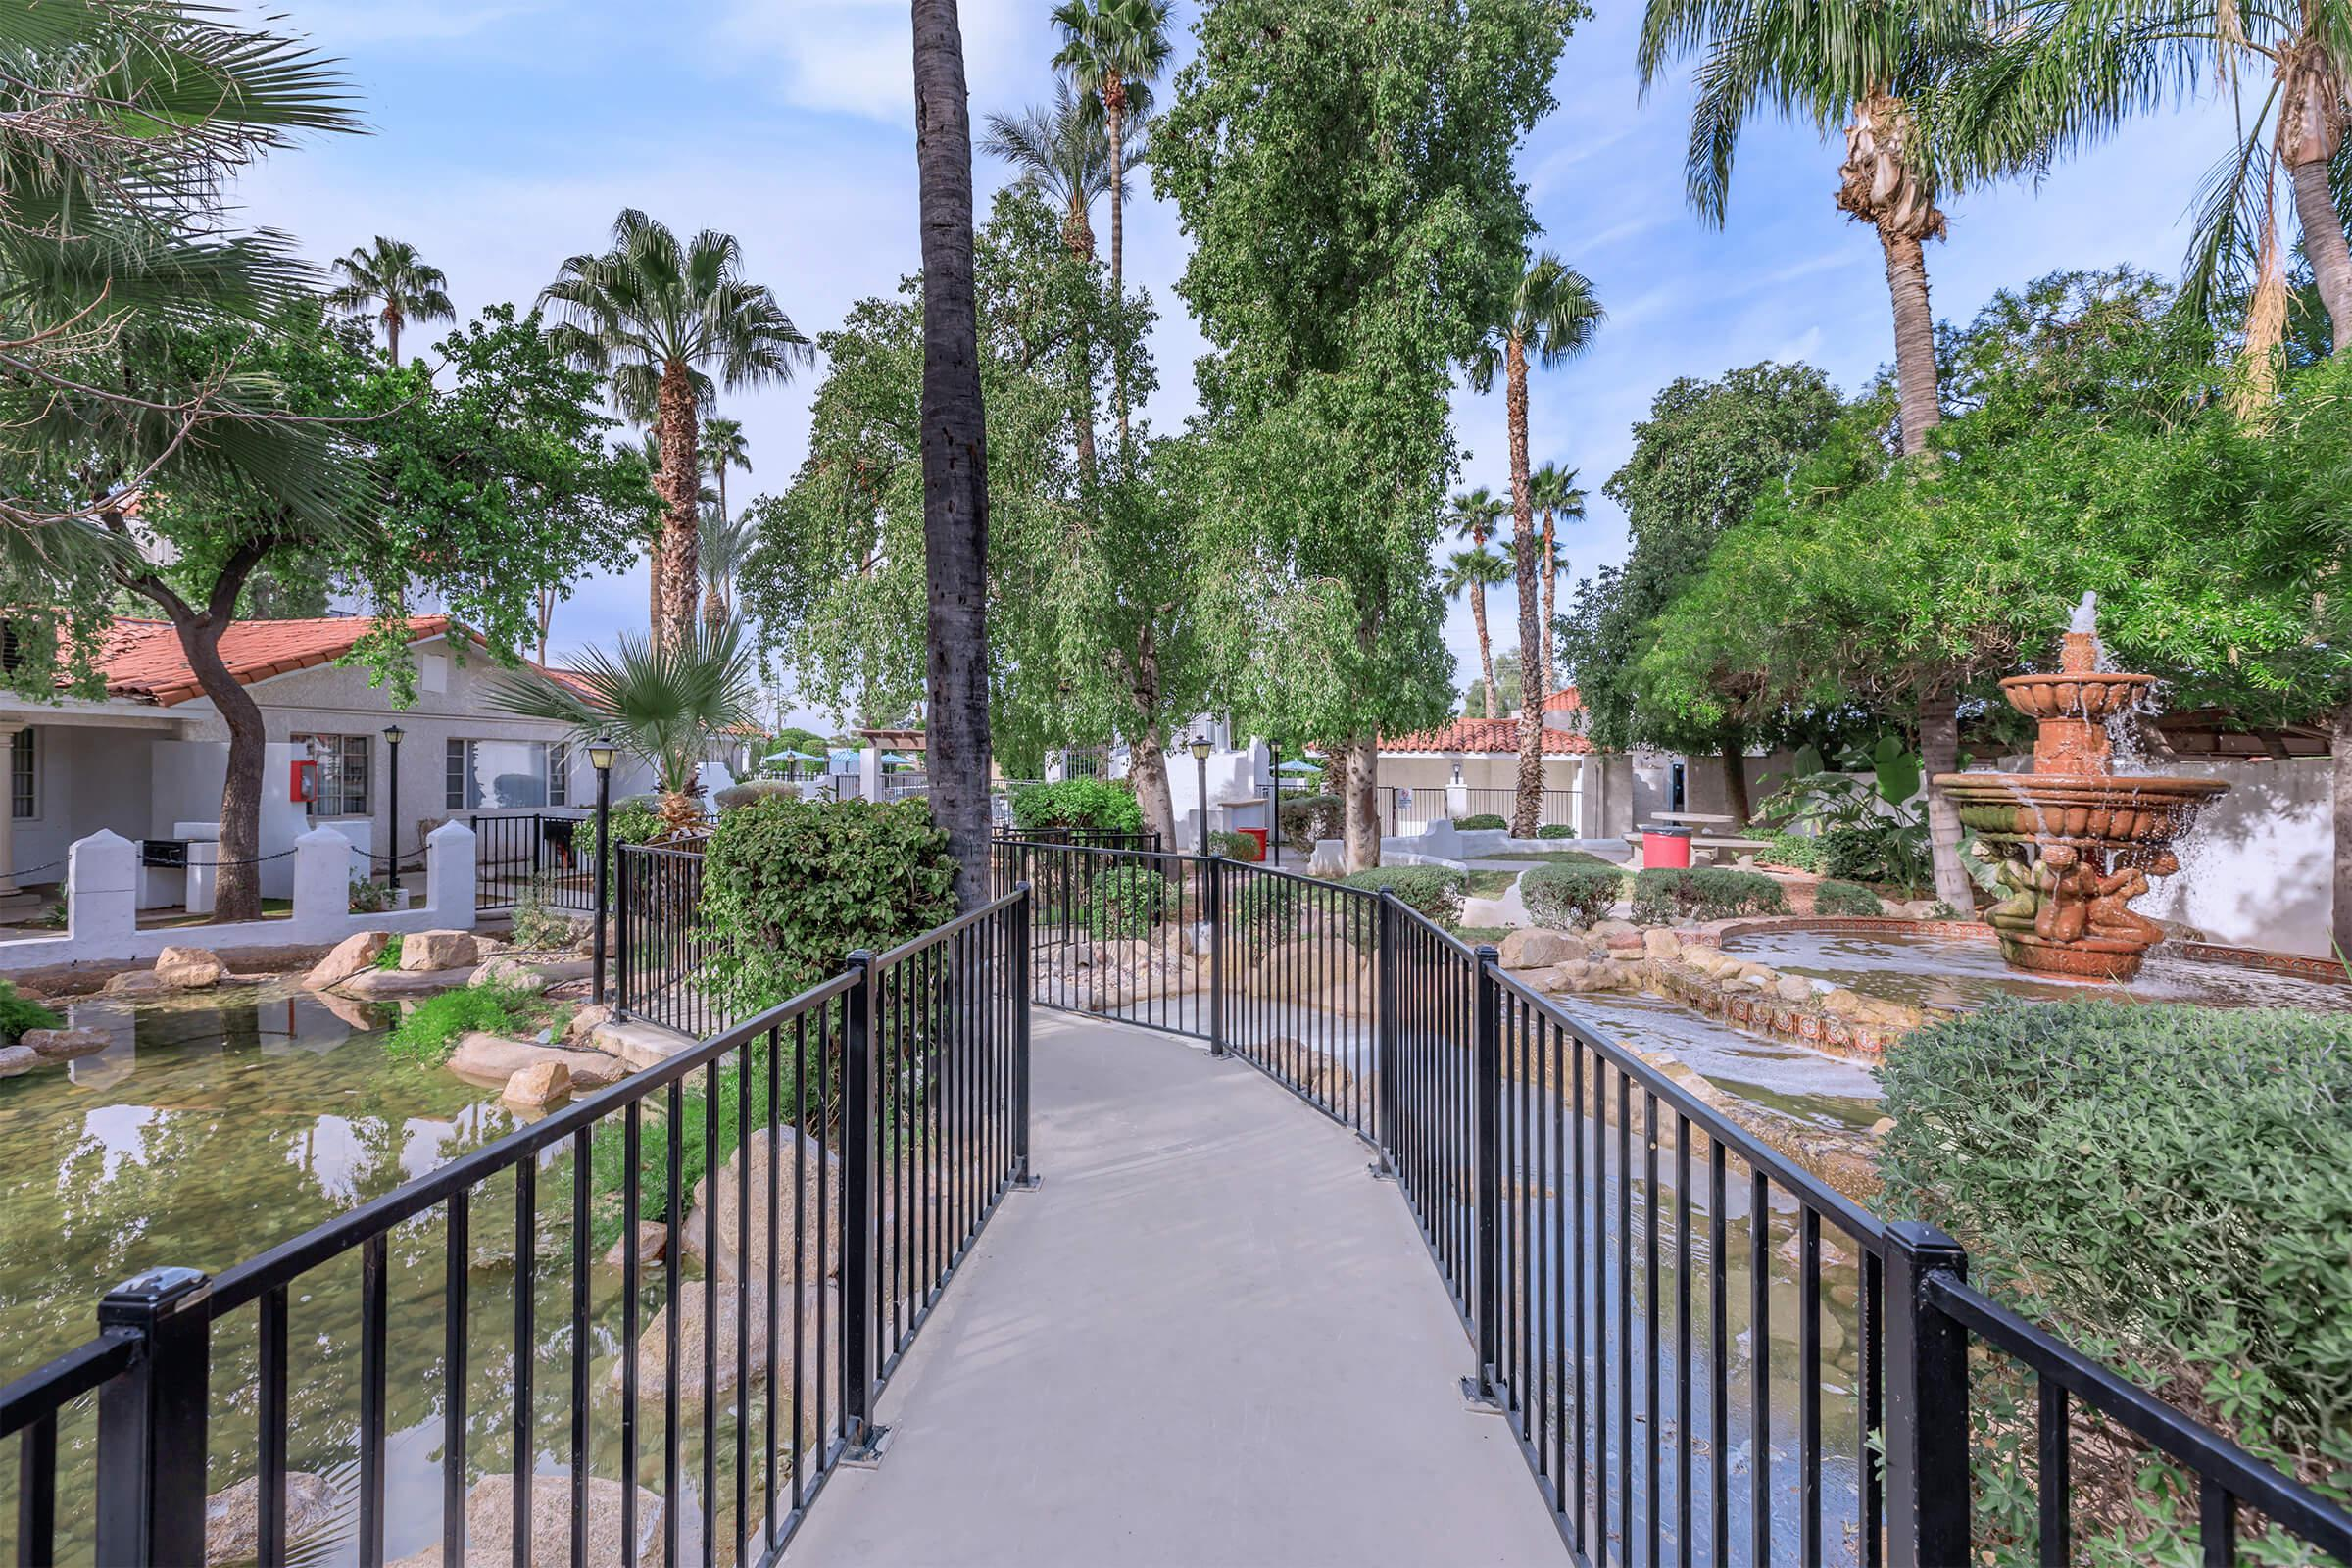 a row of palm trees and a fence